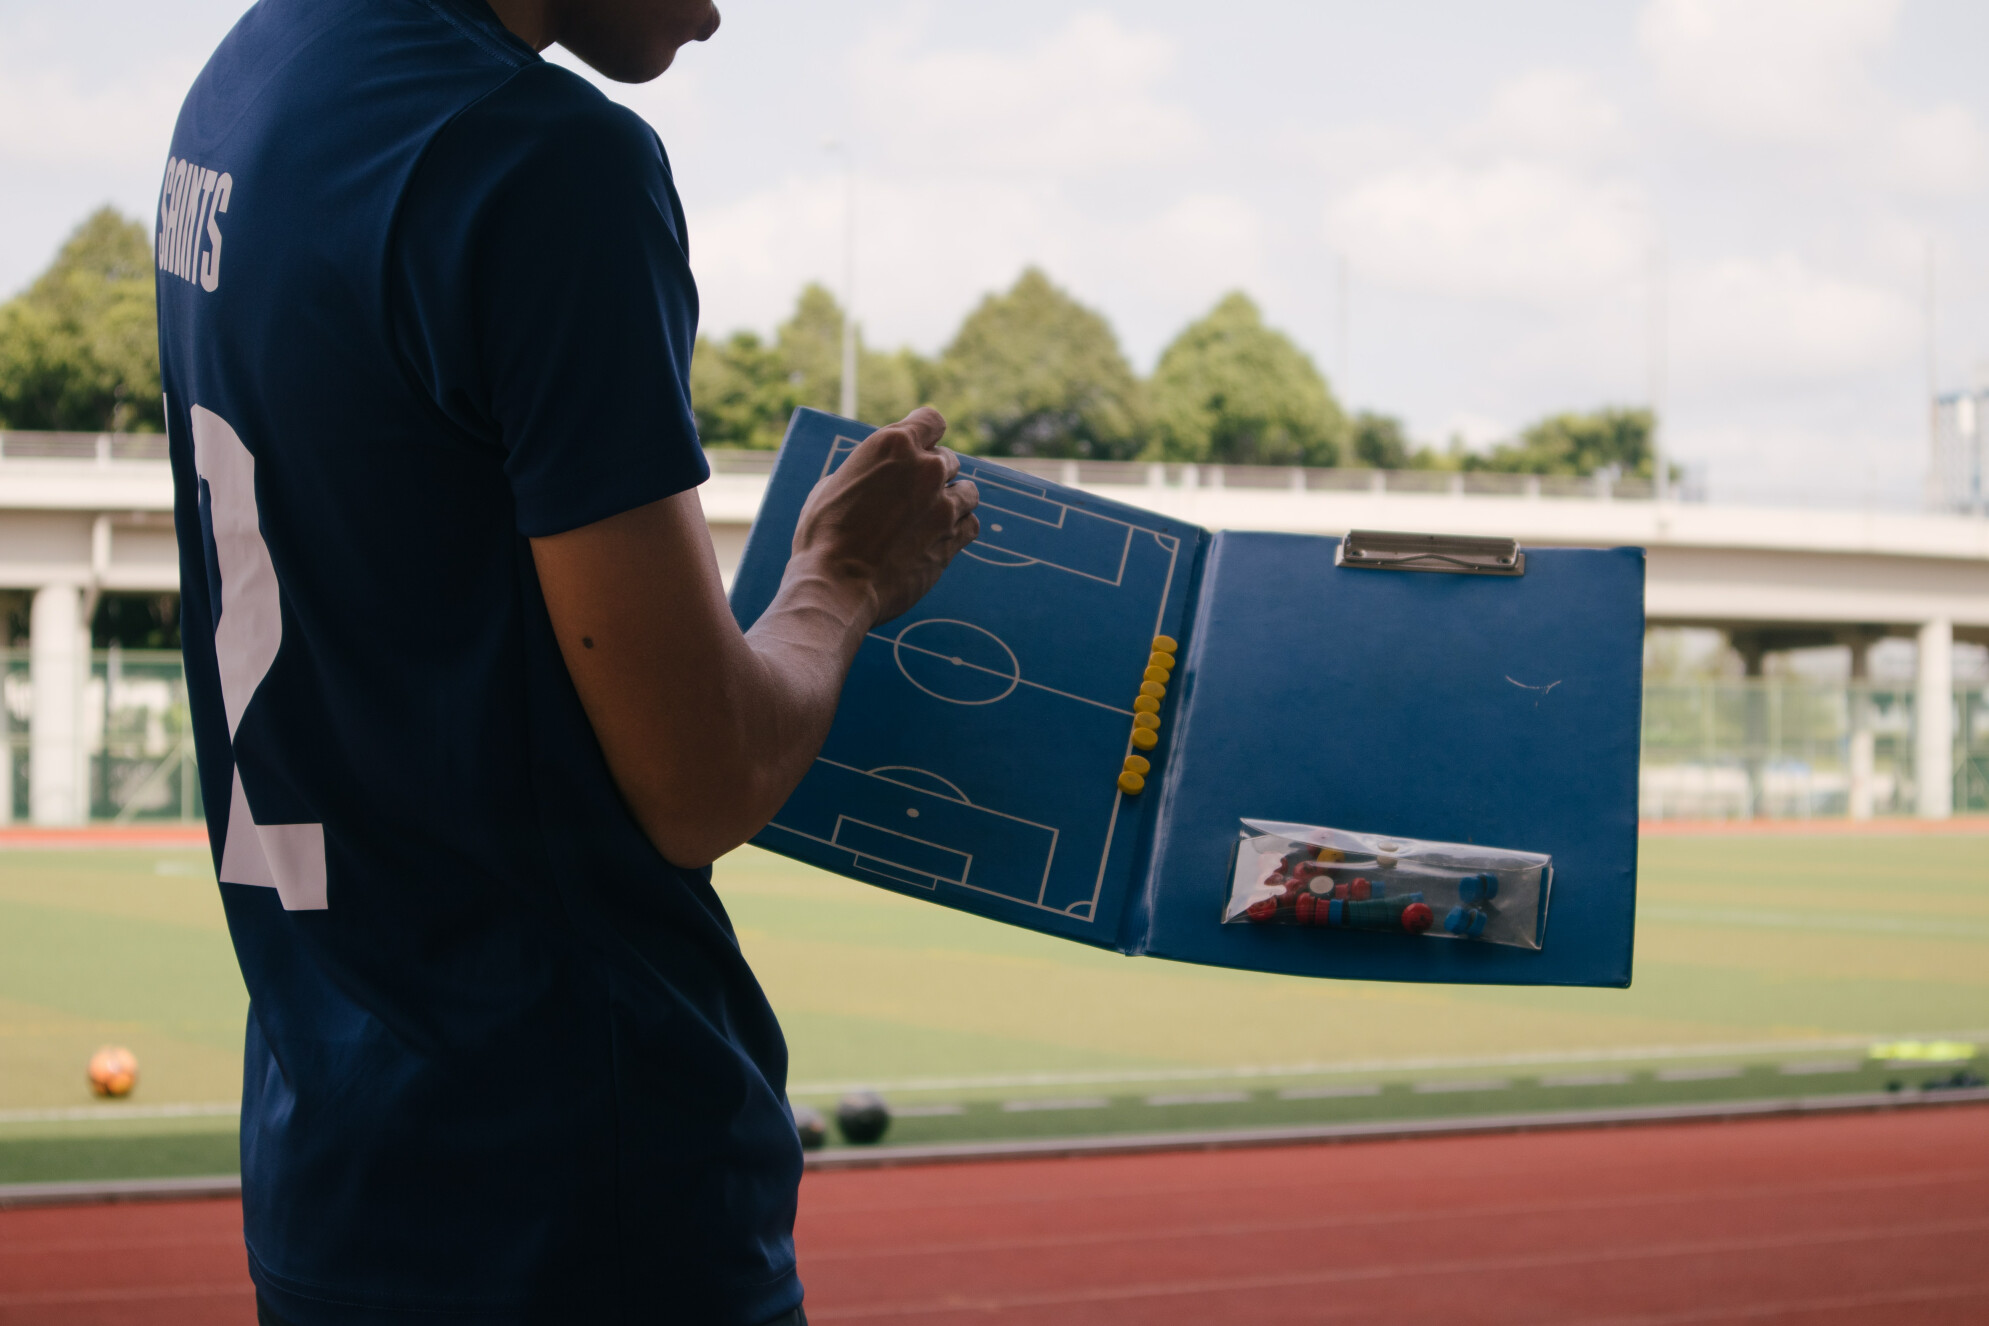 How sports analytics is helping professional players, teams, and coaches?